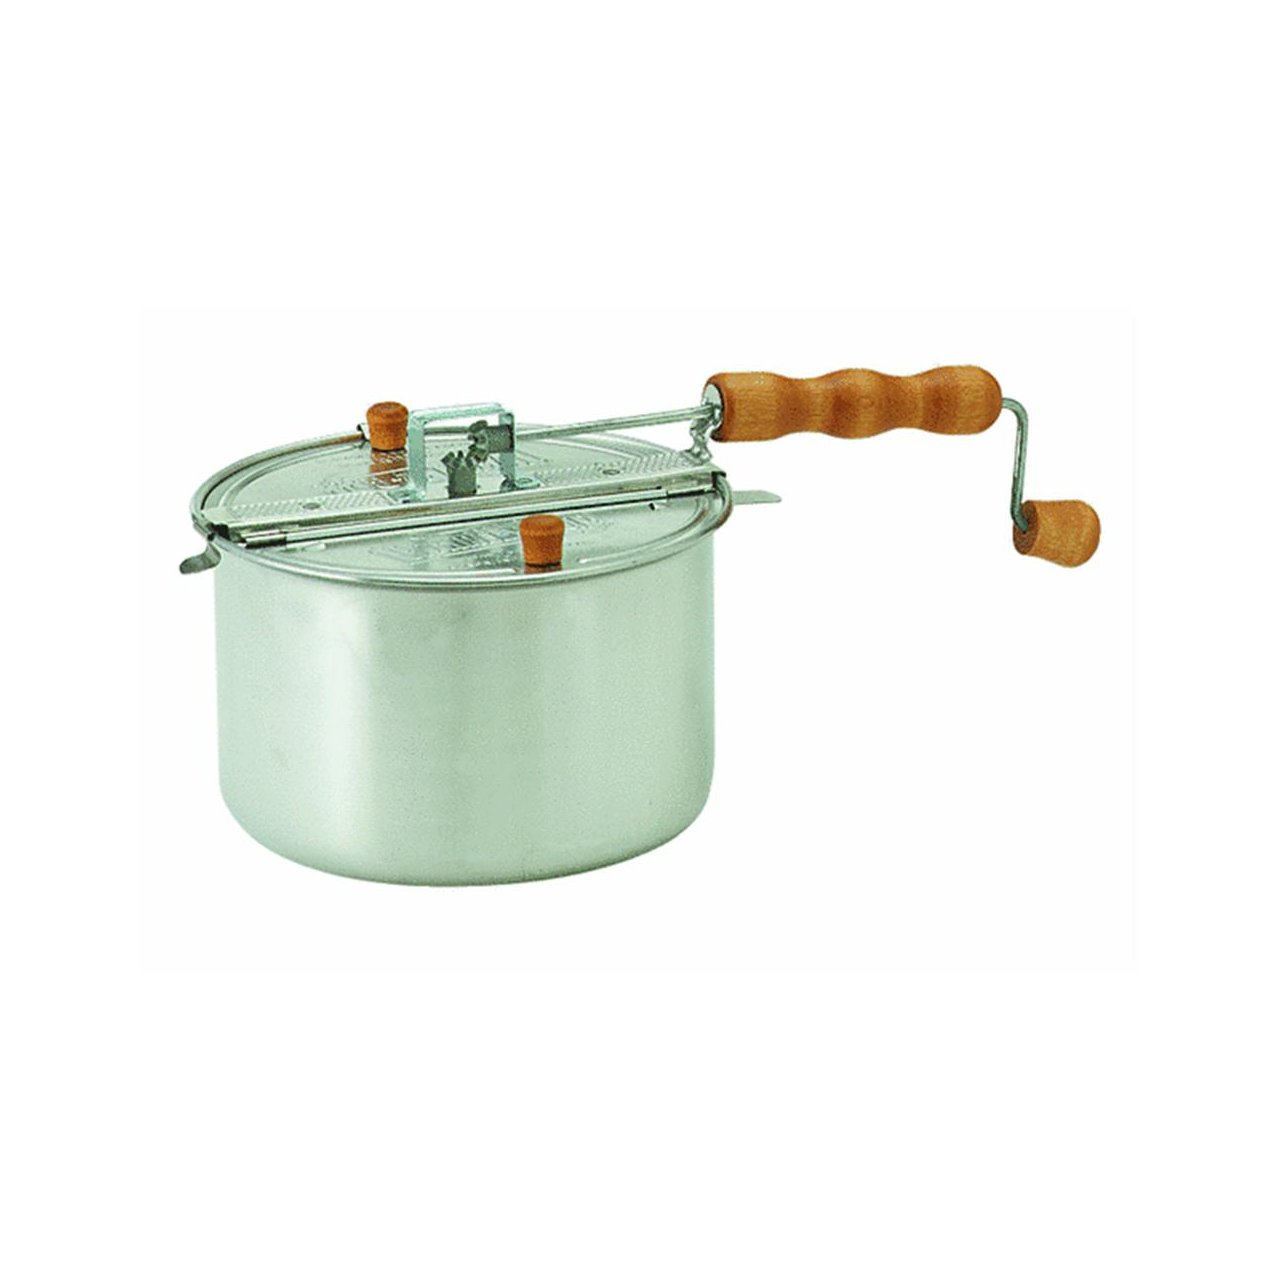 Wabash Valley Farms Original Silver Whirley Pop Stovetop Popcorn Popper (Includes Popping Kit)